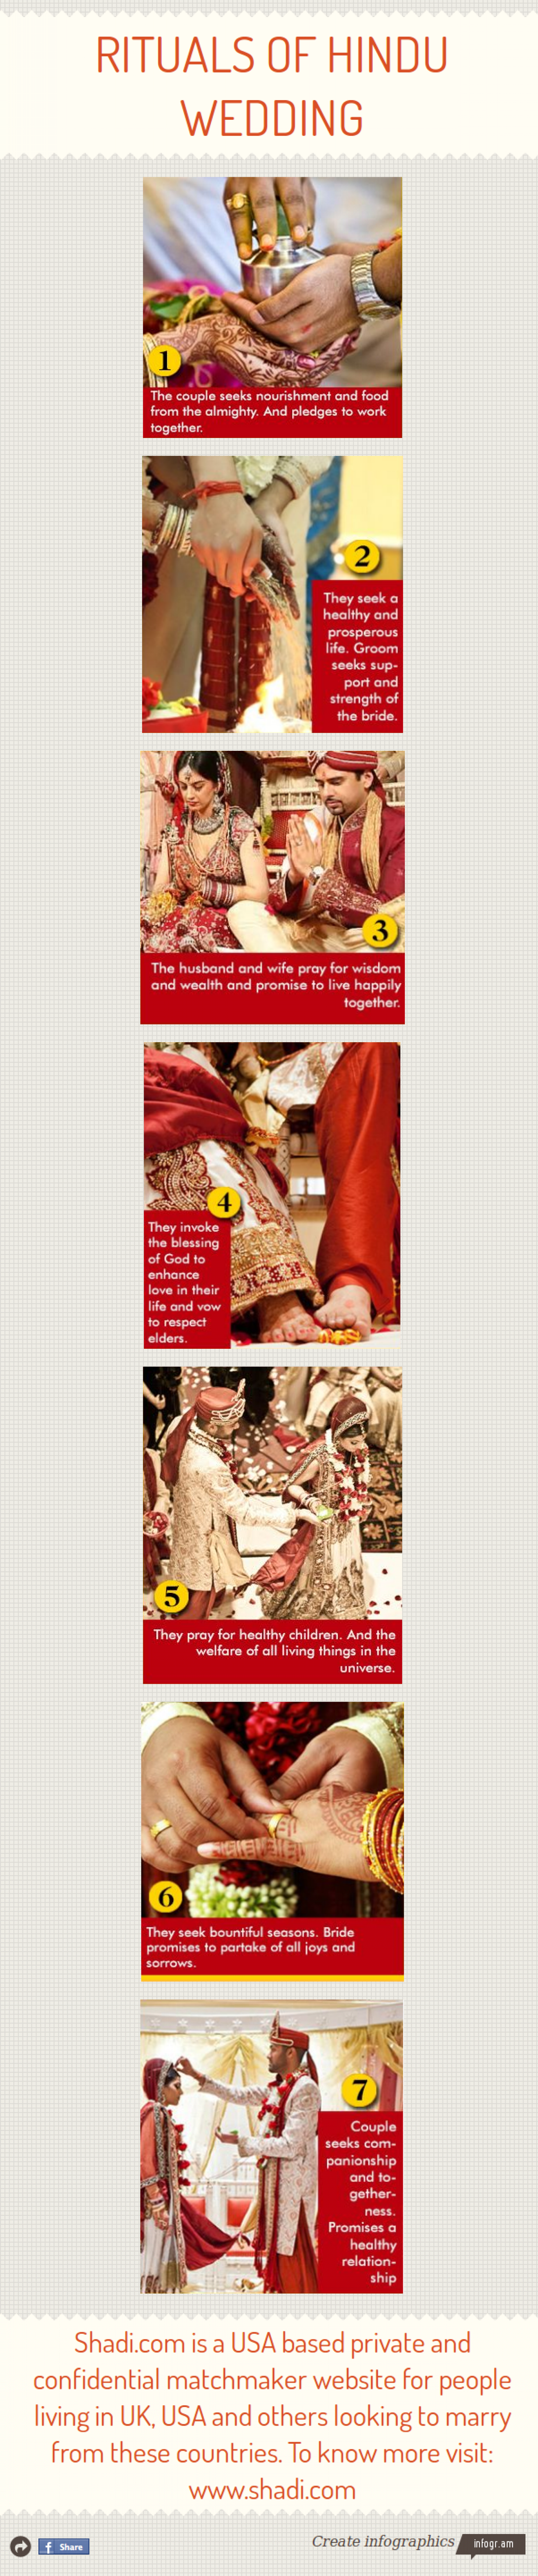 Rituals of Hindu Wedding Infographic